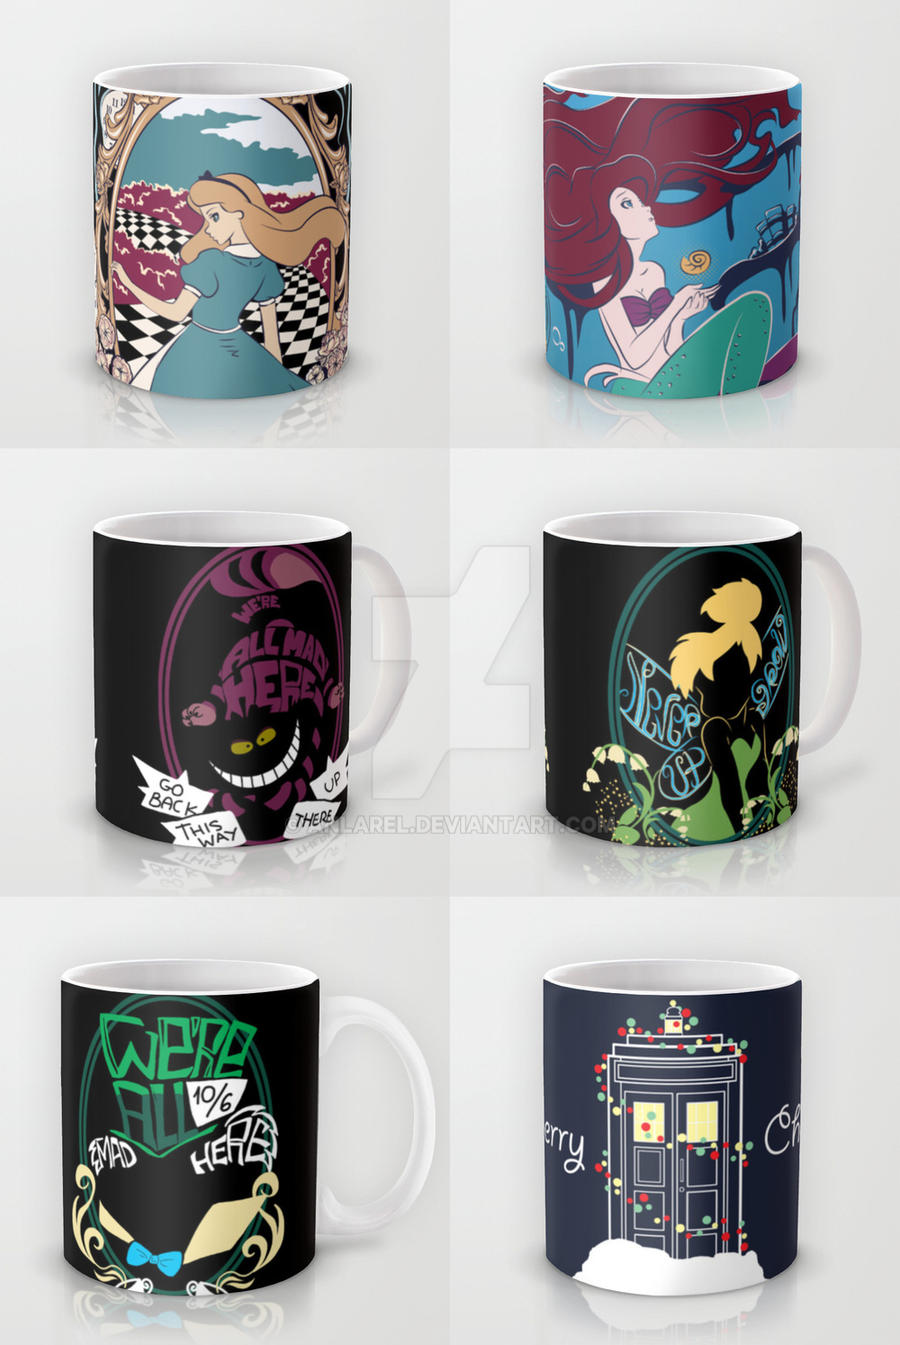 Mugs on society6 by anlarel on deviantart for Websites similar to society6